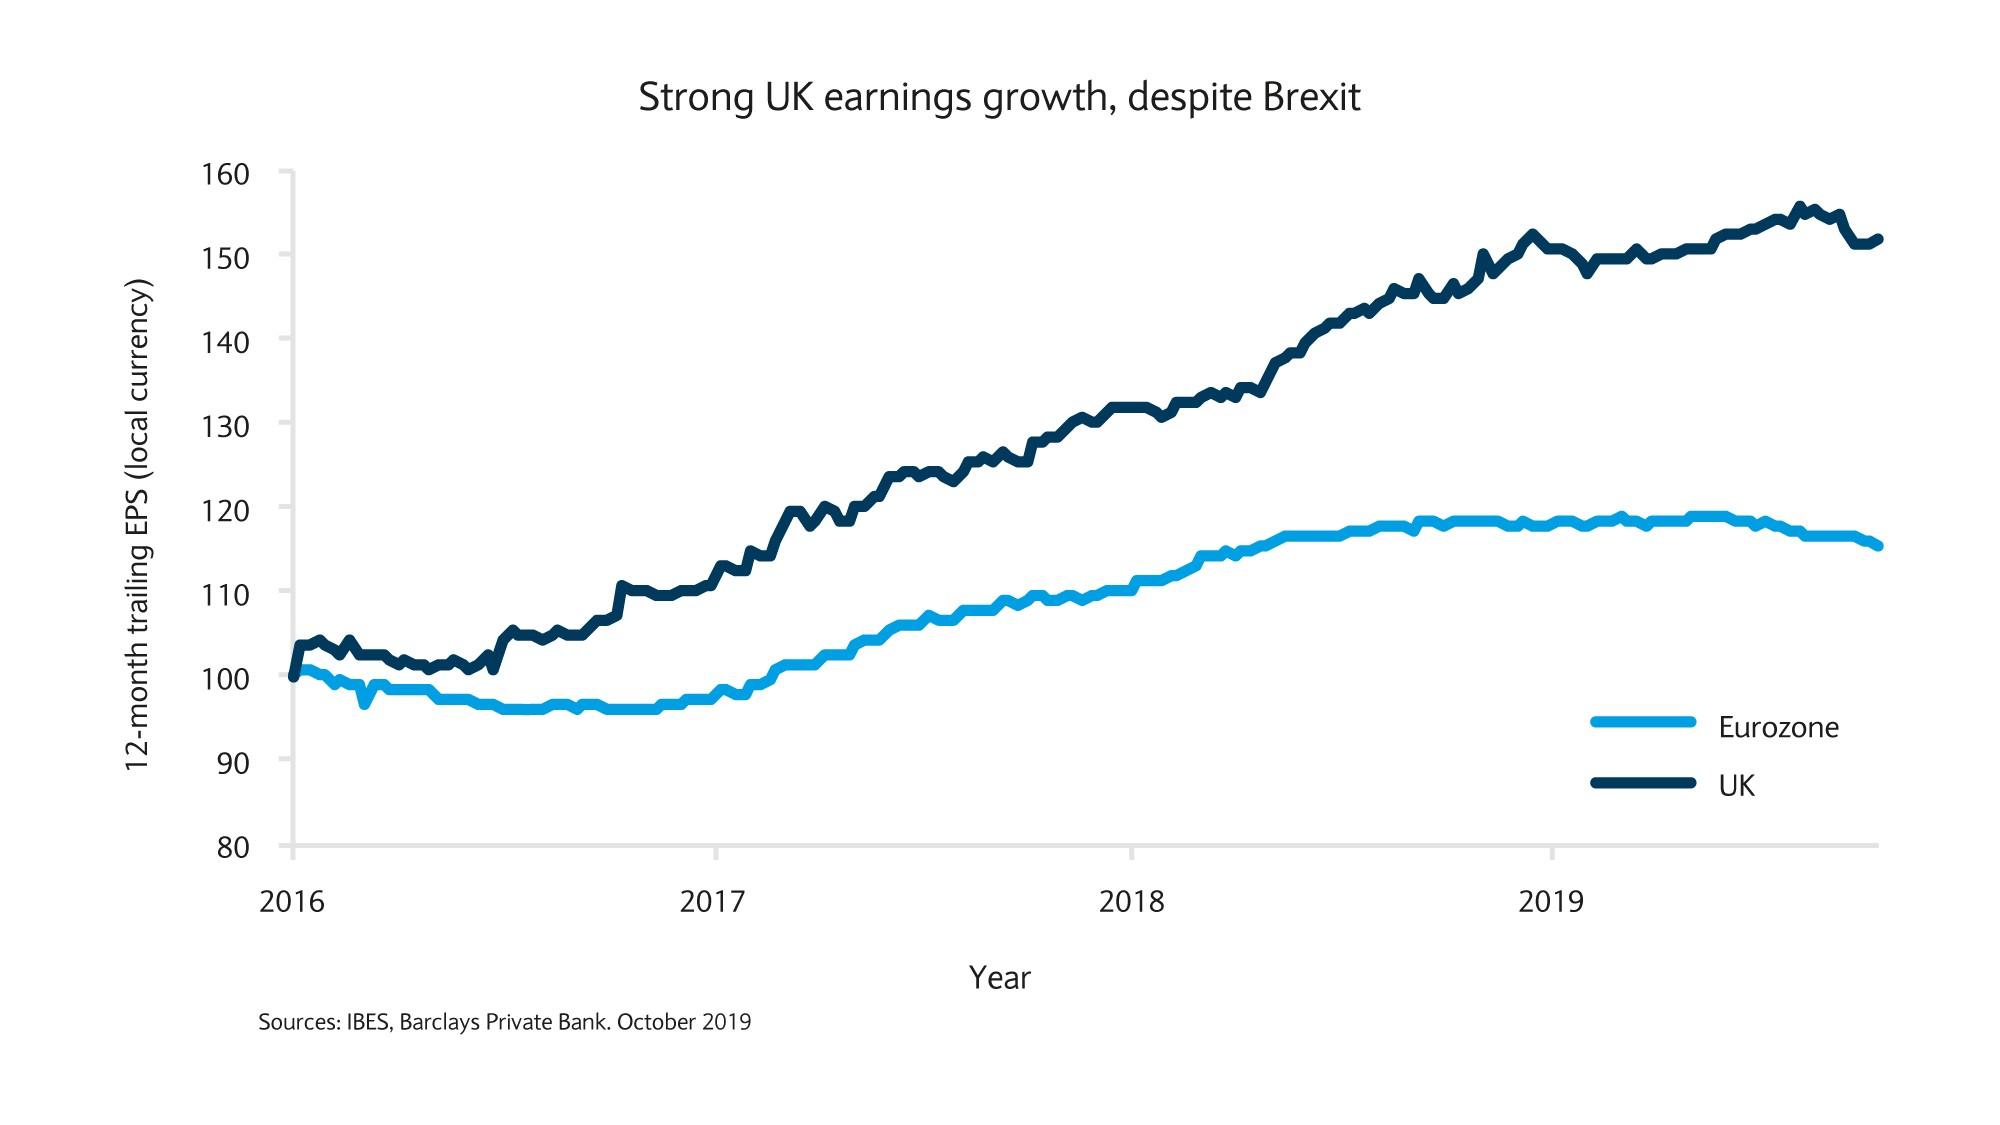 Strong UK earnings growth, despite Brexit